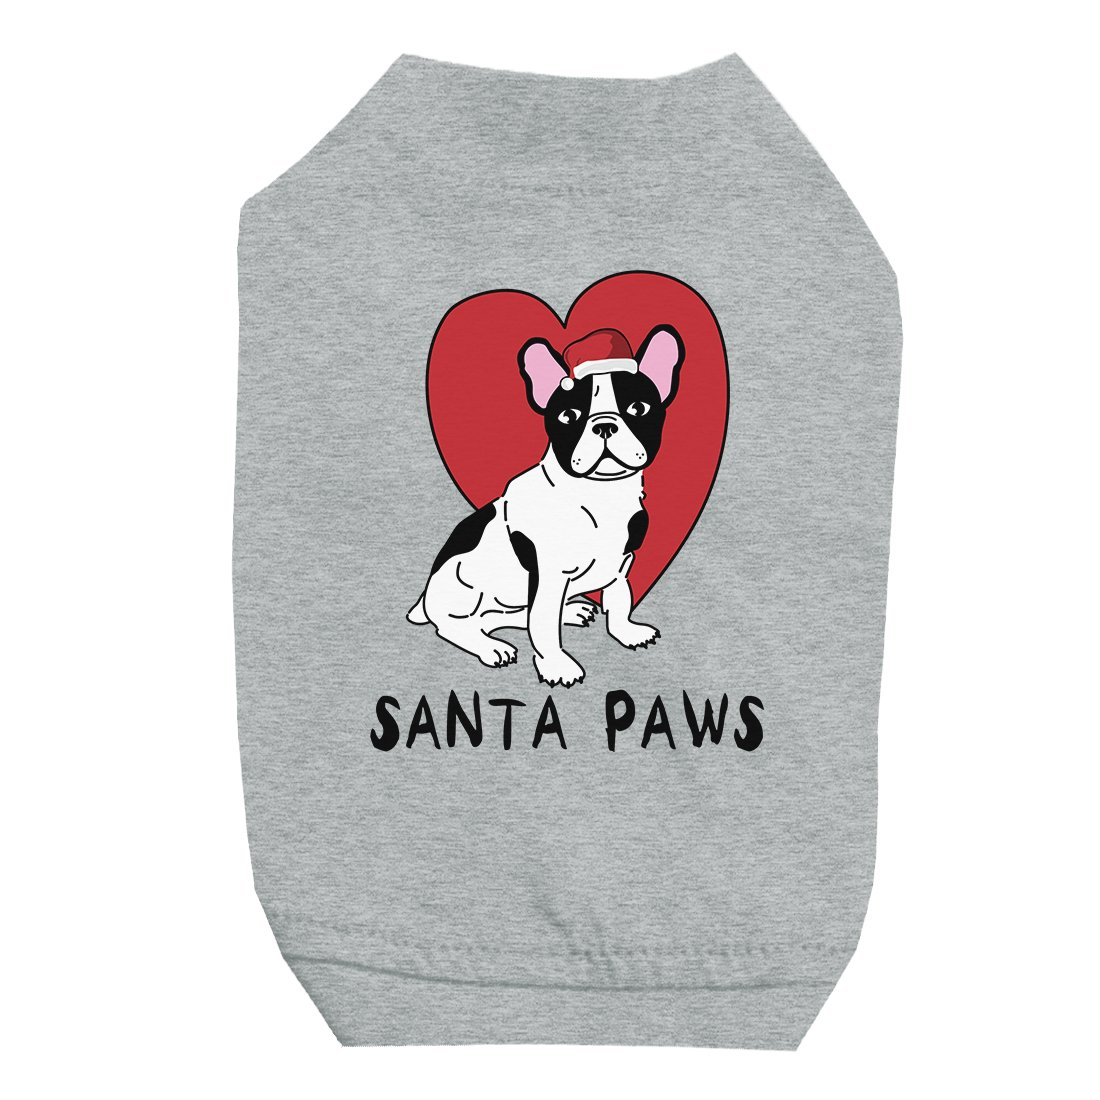 Santa Paws Pet Shirt for Small Dogs